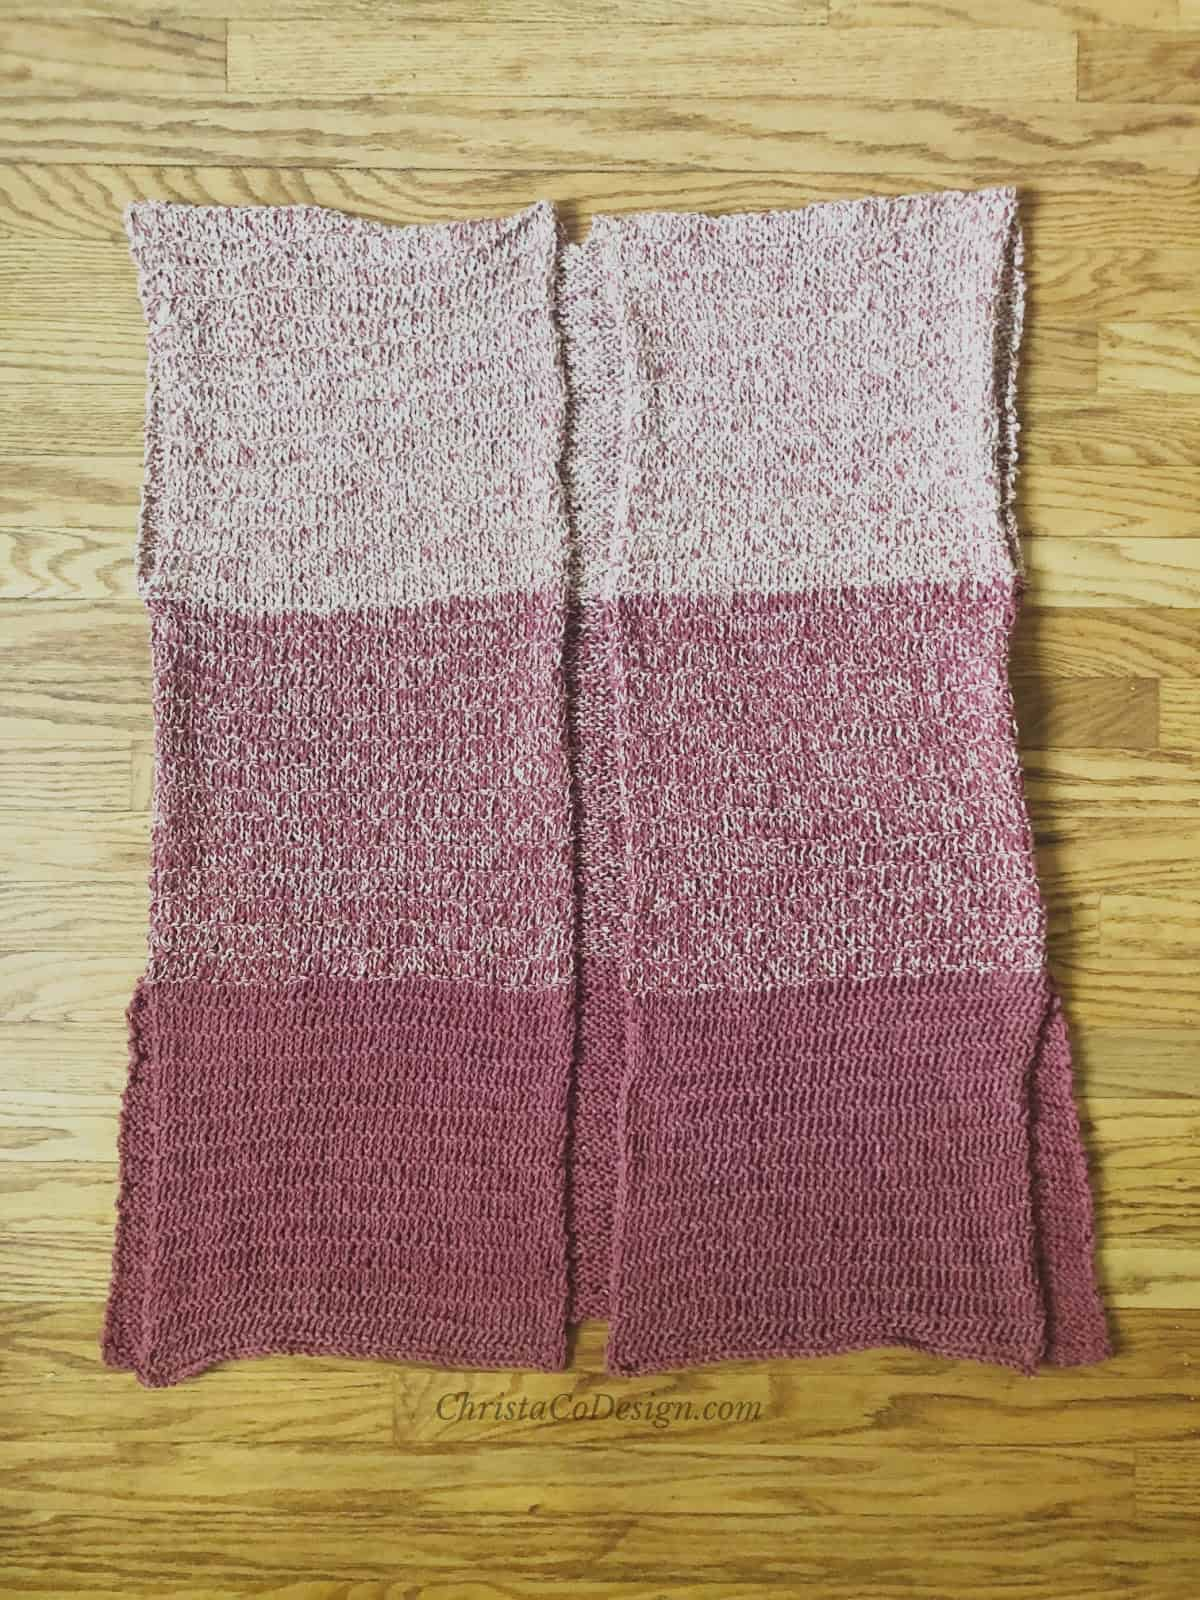 picture of seamed Lana knit cardigan flat in maroon and white ombre stripes